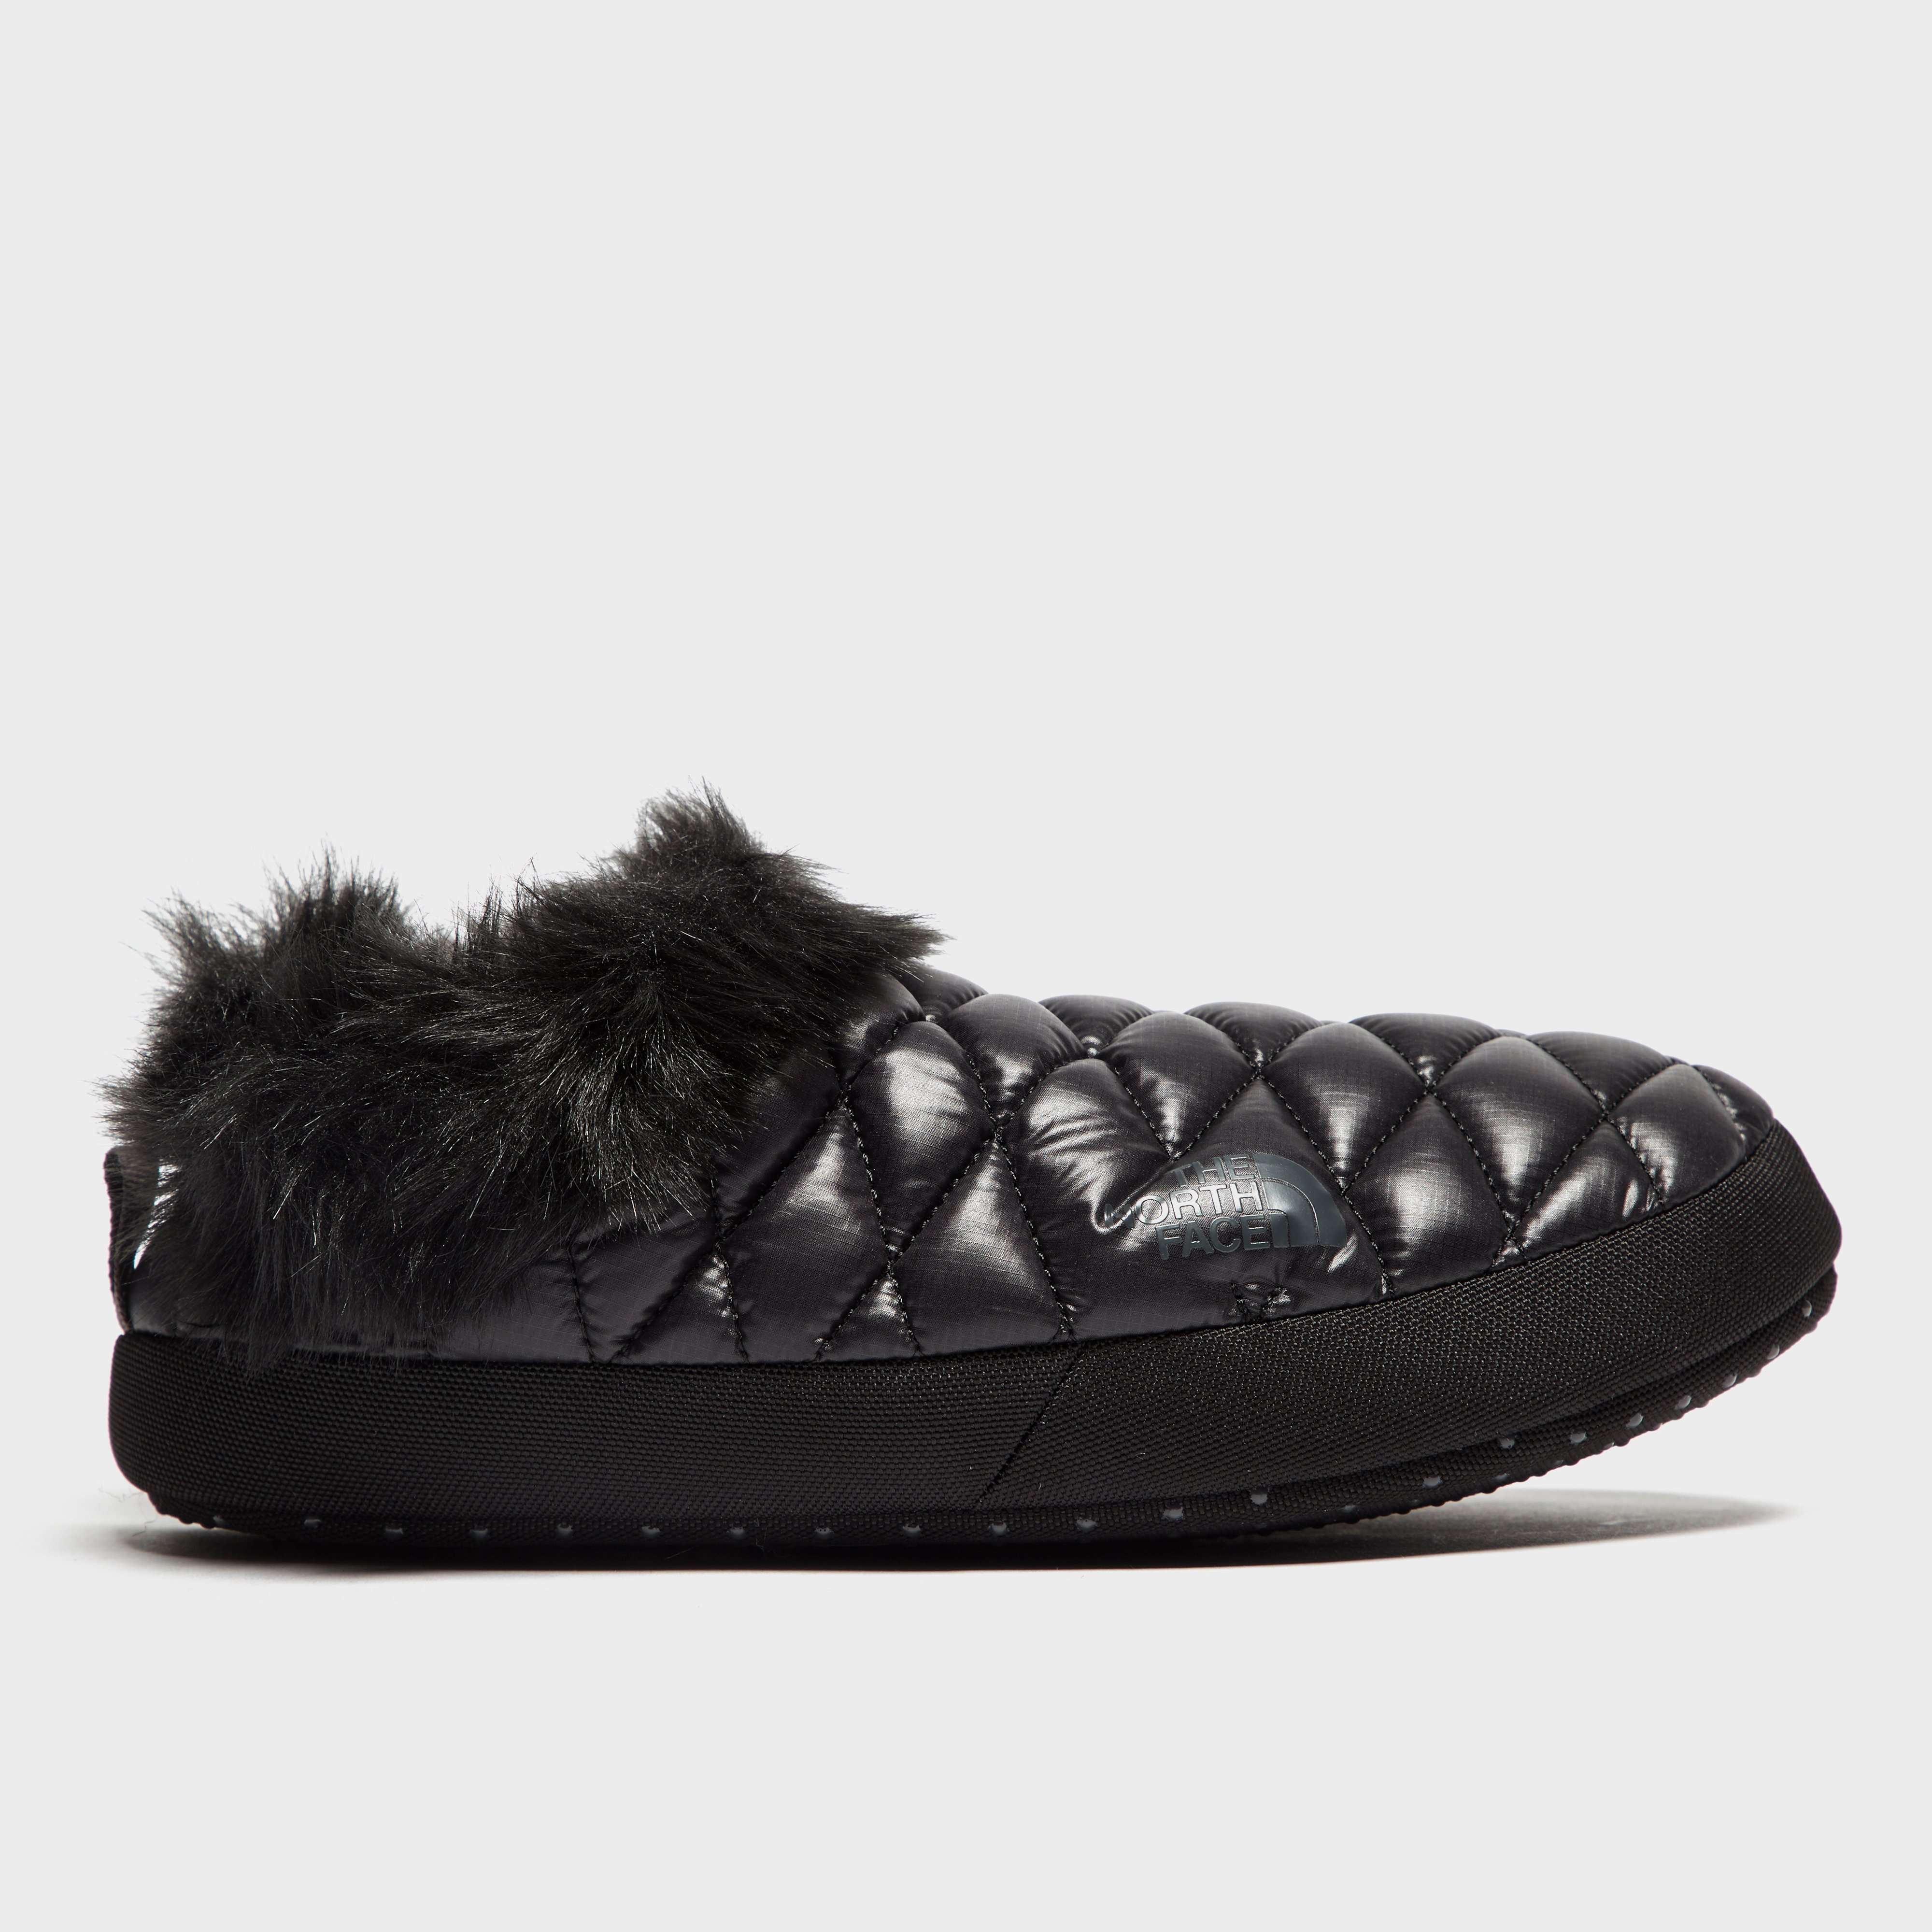 THE NORTH FACE Women's Thermoball Mule